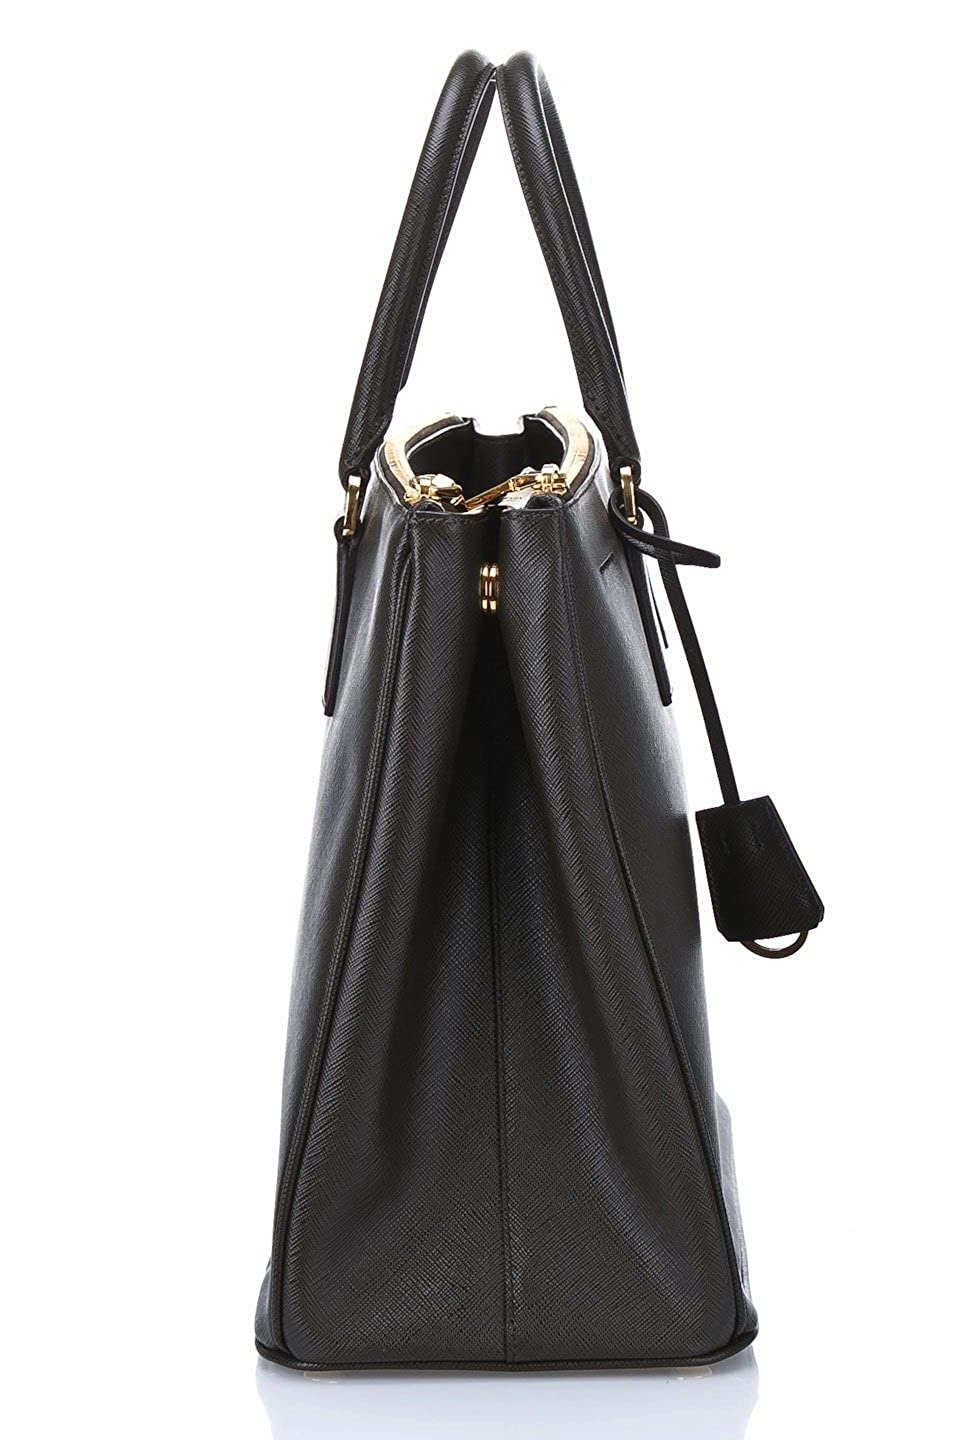 9496a33eff432c Prada Women's Tote Bag Saffiano Leather in Black Style BN1802:  Amazon.co.uk: Clothing